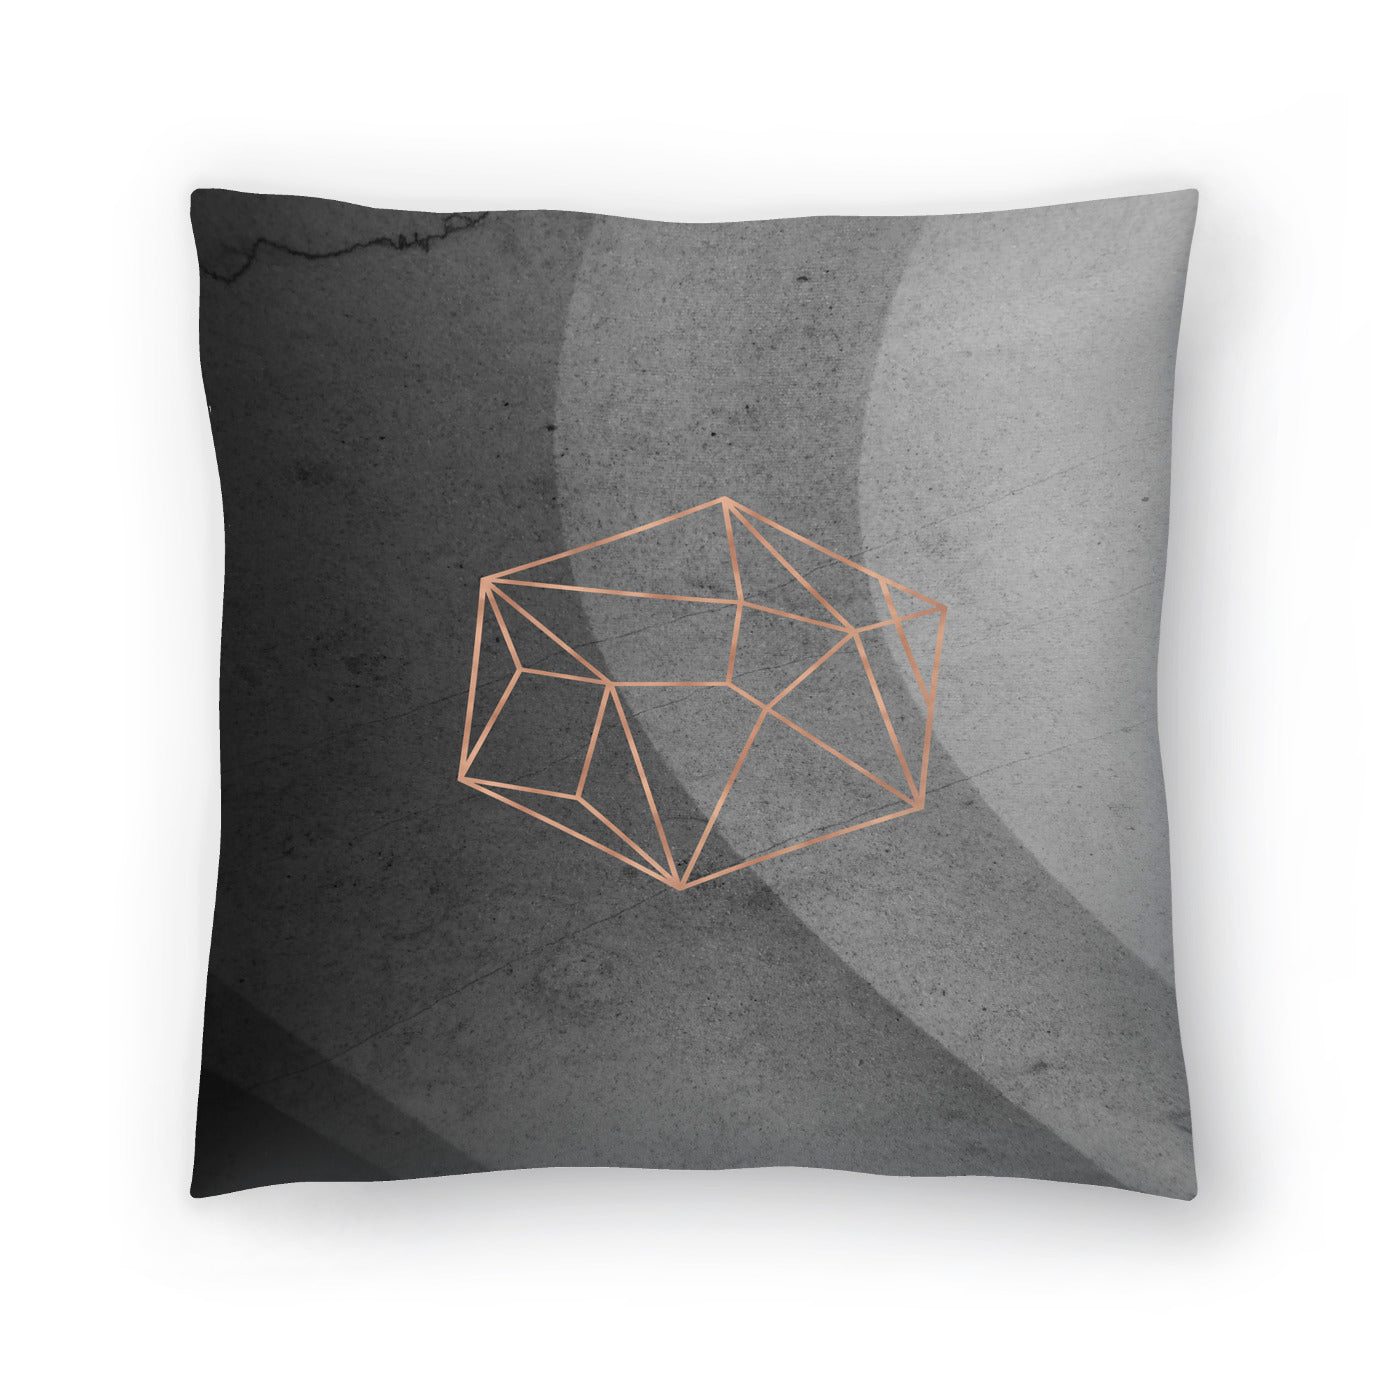 Geometric Solids On Marble by Emanuela Carratoni Decorative Pillow - Decorative Pillow - Americanflat